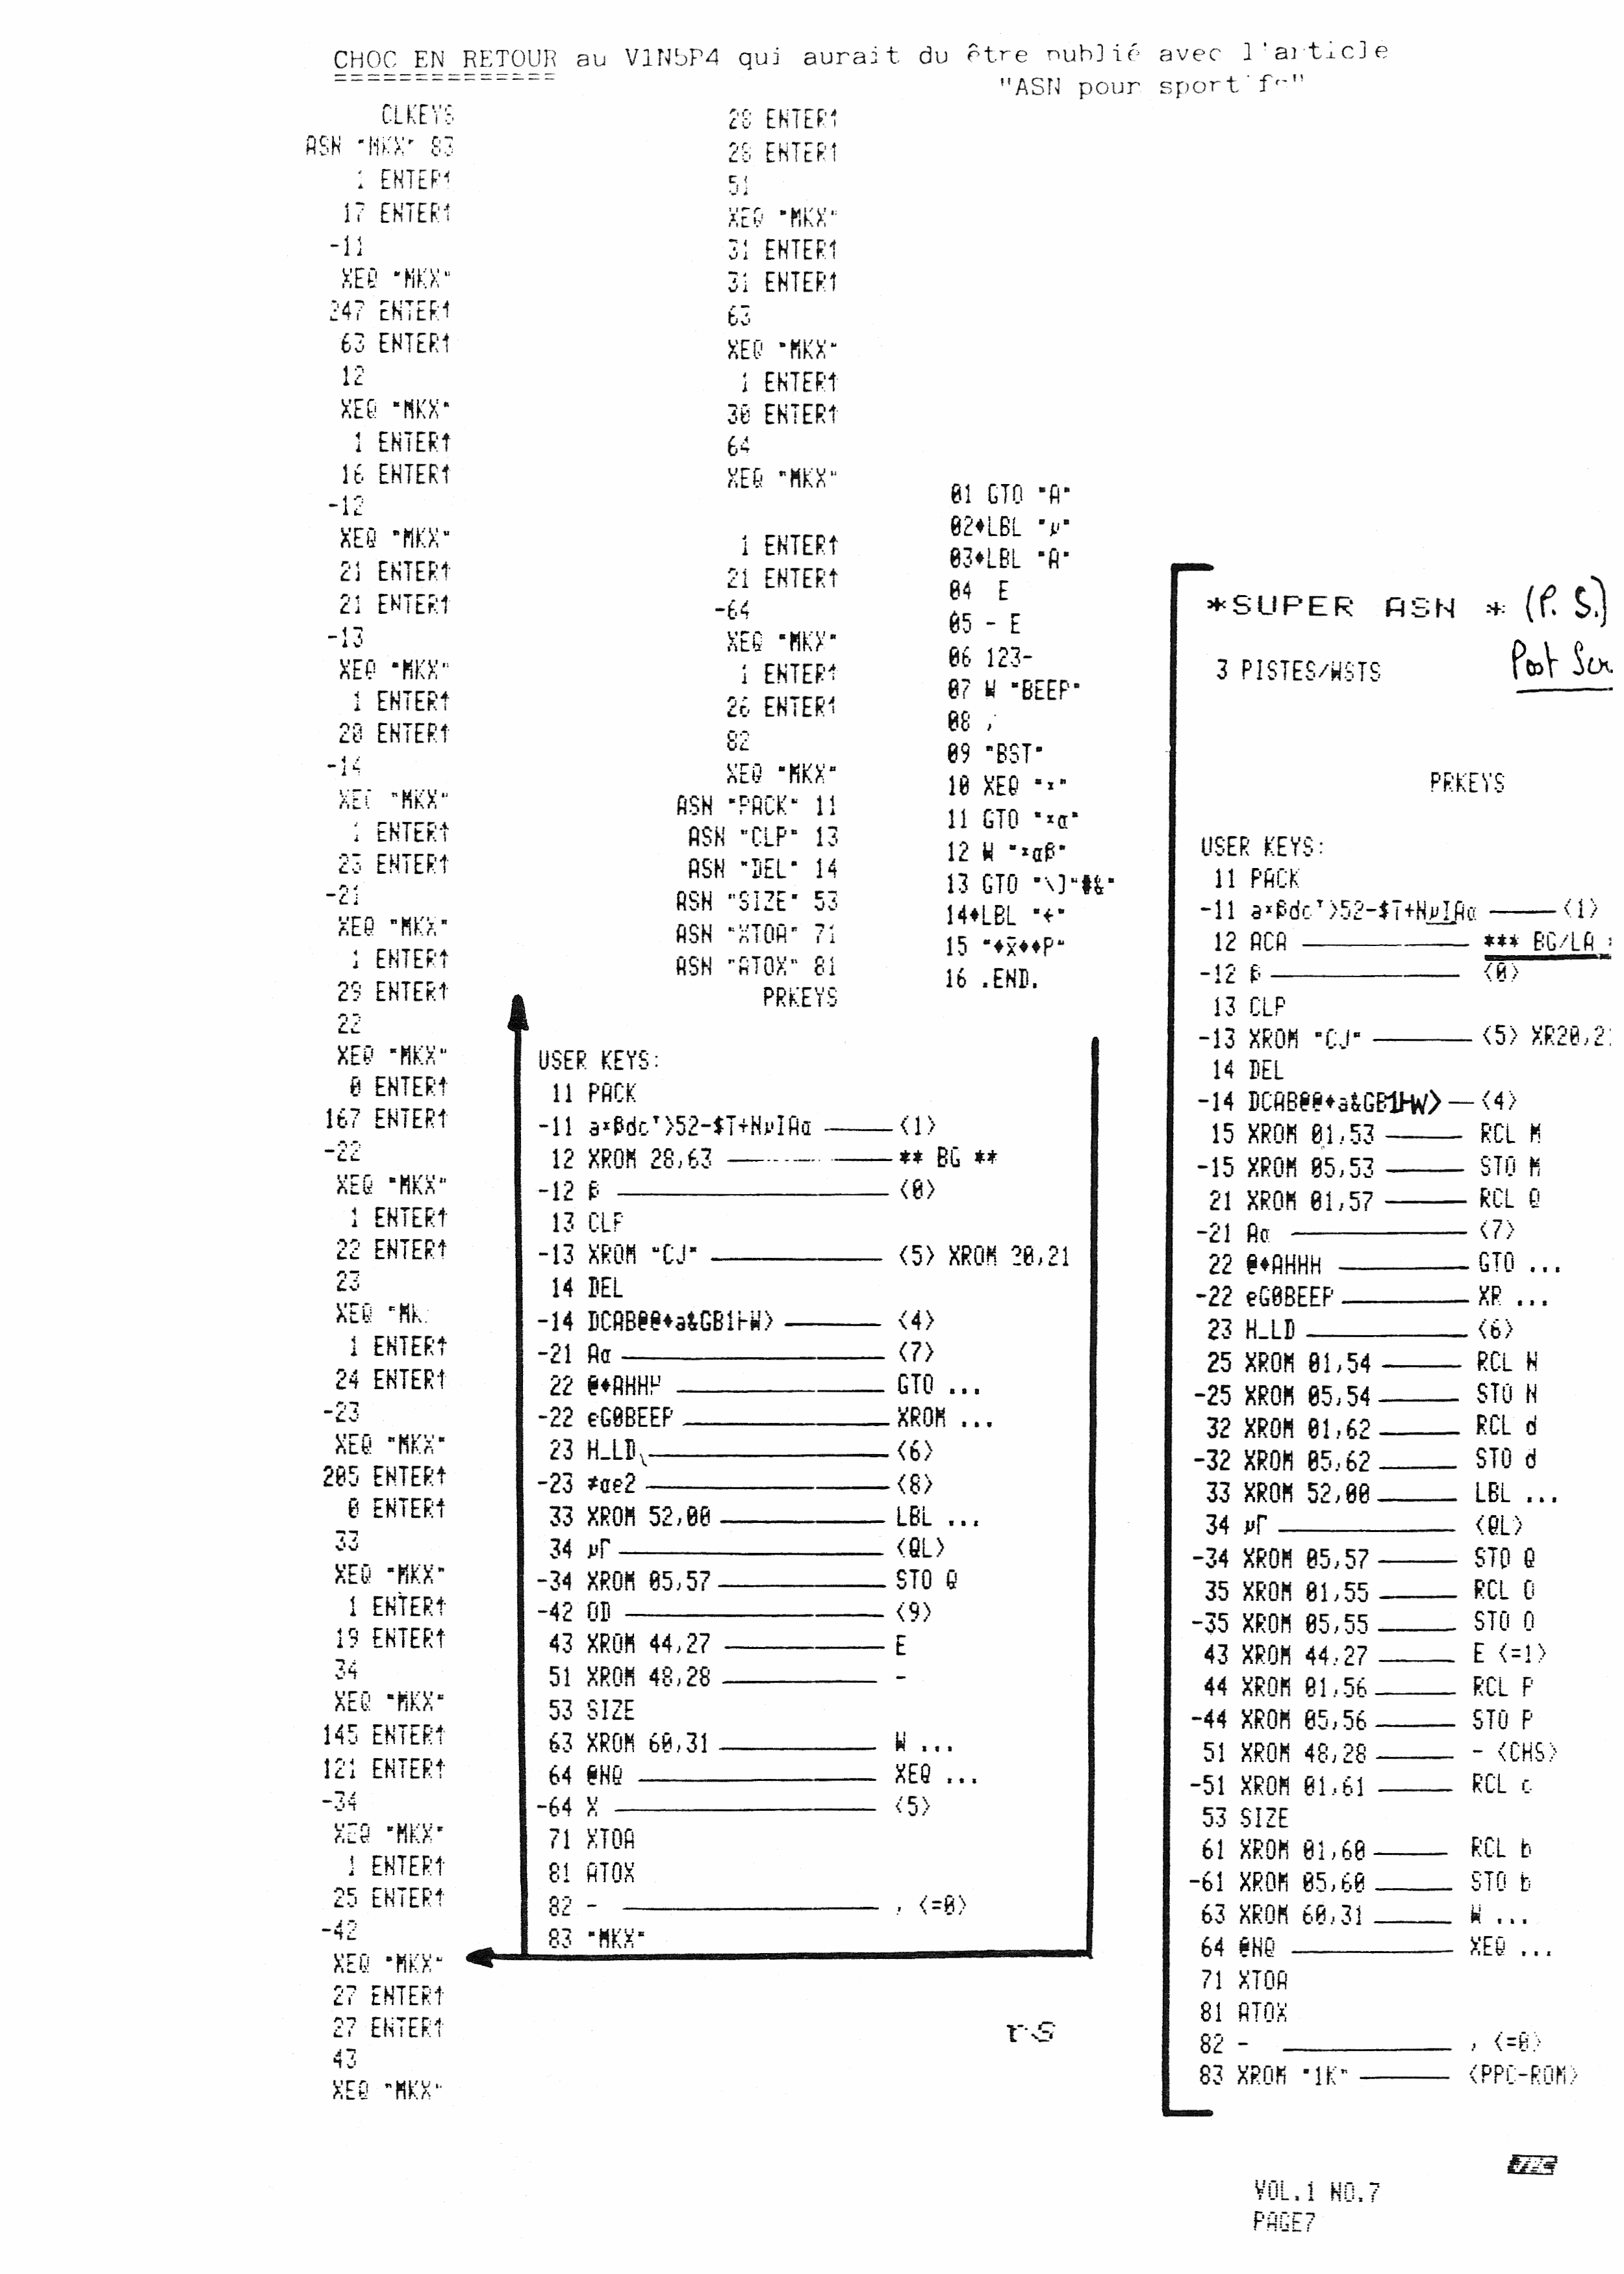 Jp-7-page-7-1000